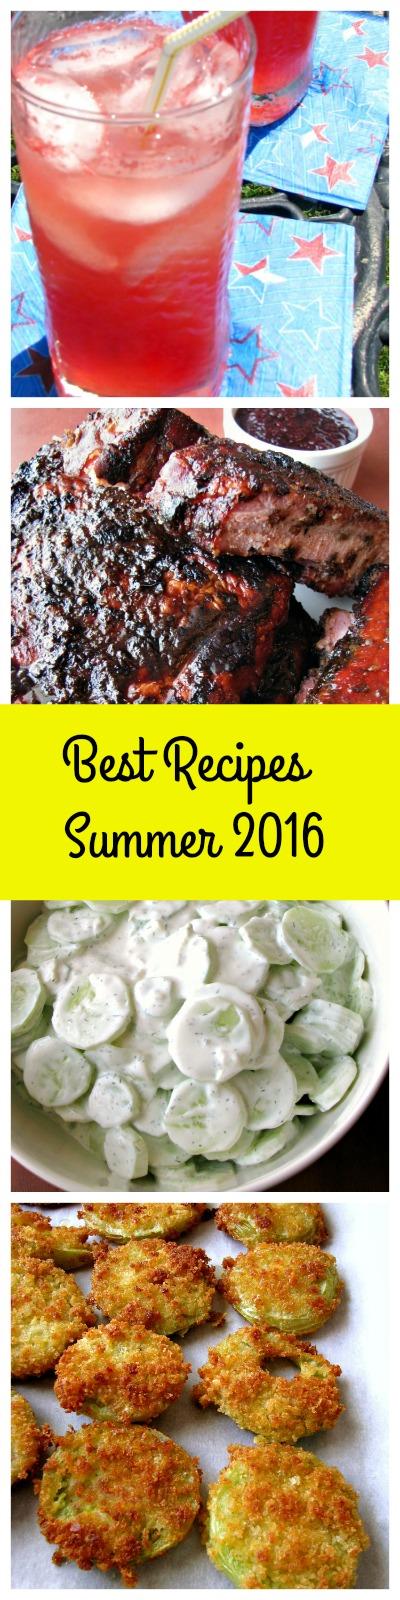 Best Recipes Summer 2016- Watermelon Punch, Grilled Cajun Blueberry BBQ Ribs, Creamy Cucumber Salad, Crispy Fried Green Tomatoes.